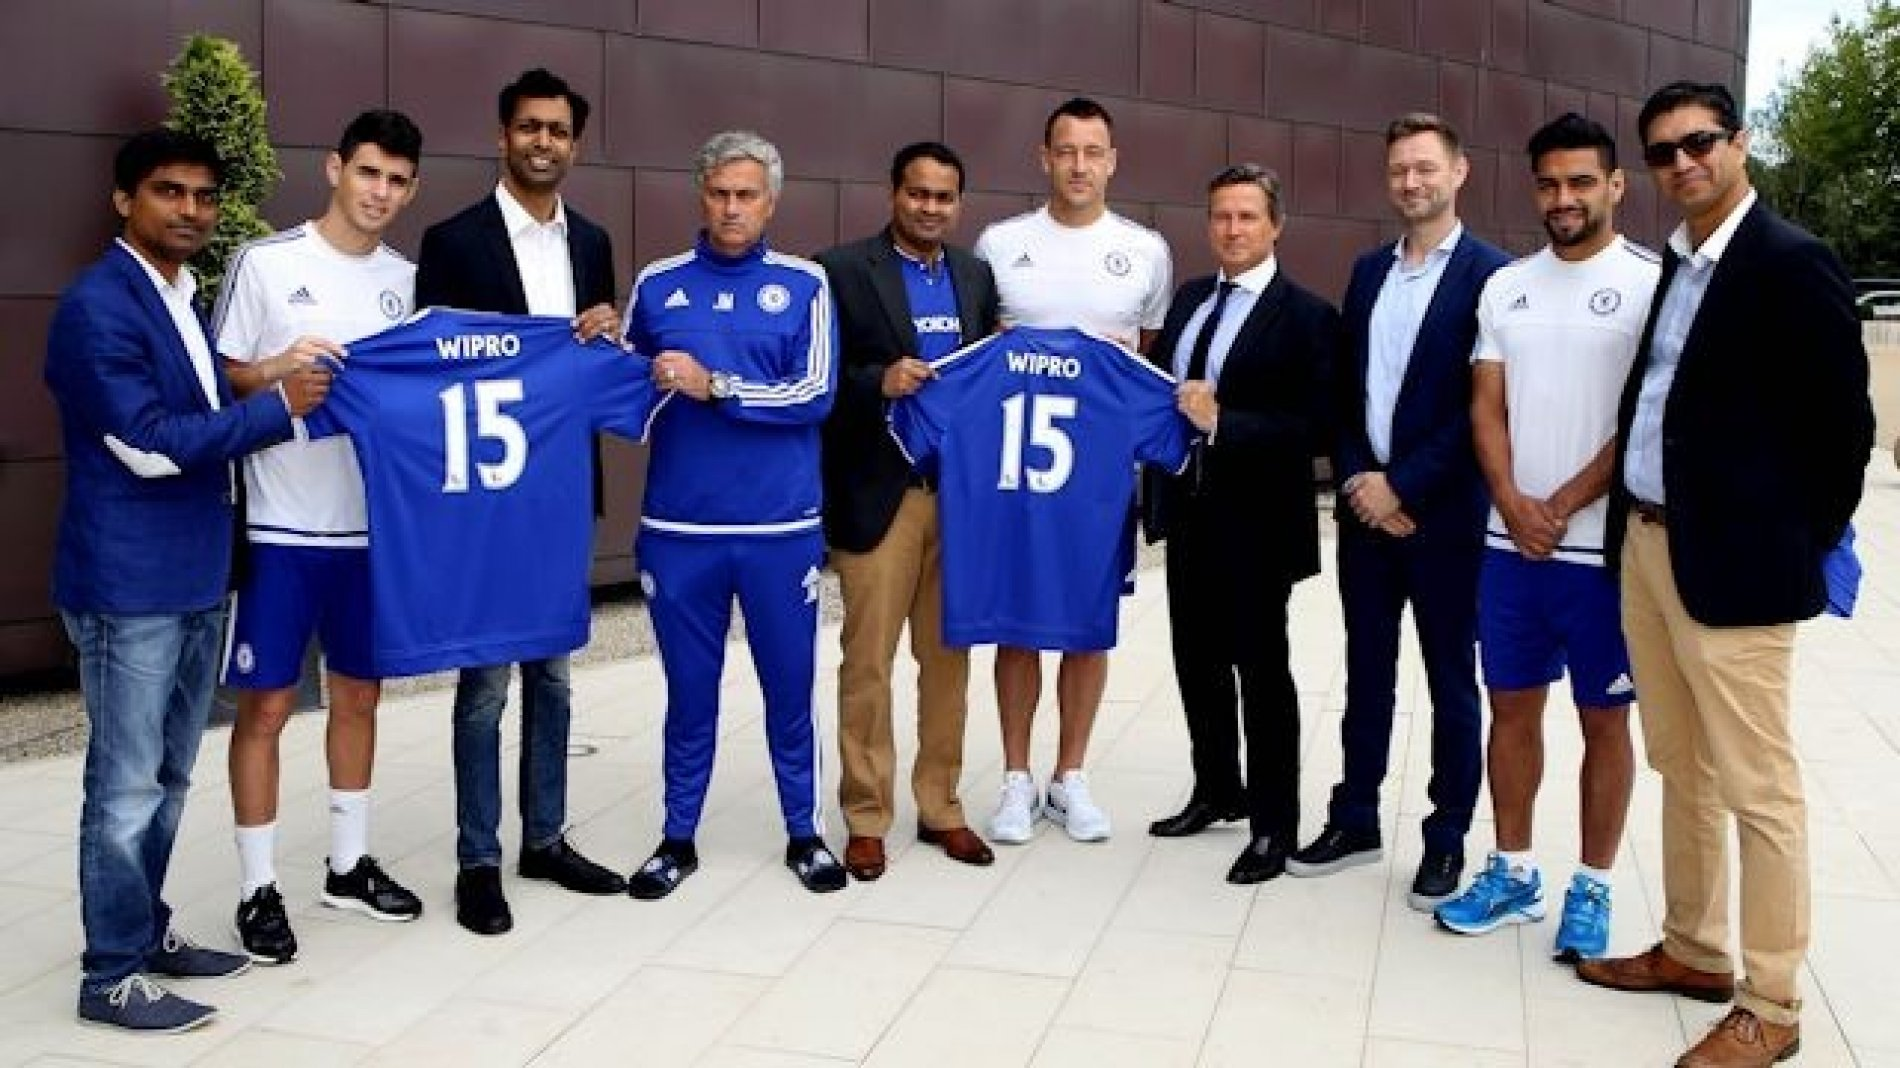 L'efficace communication digitale du Chelsea FC